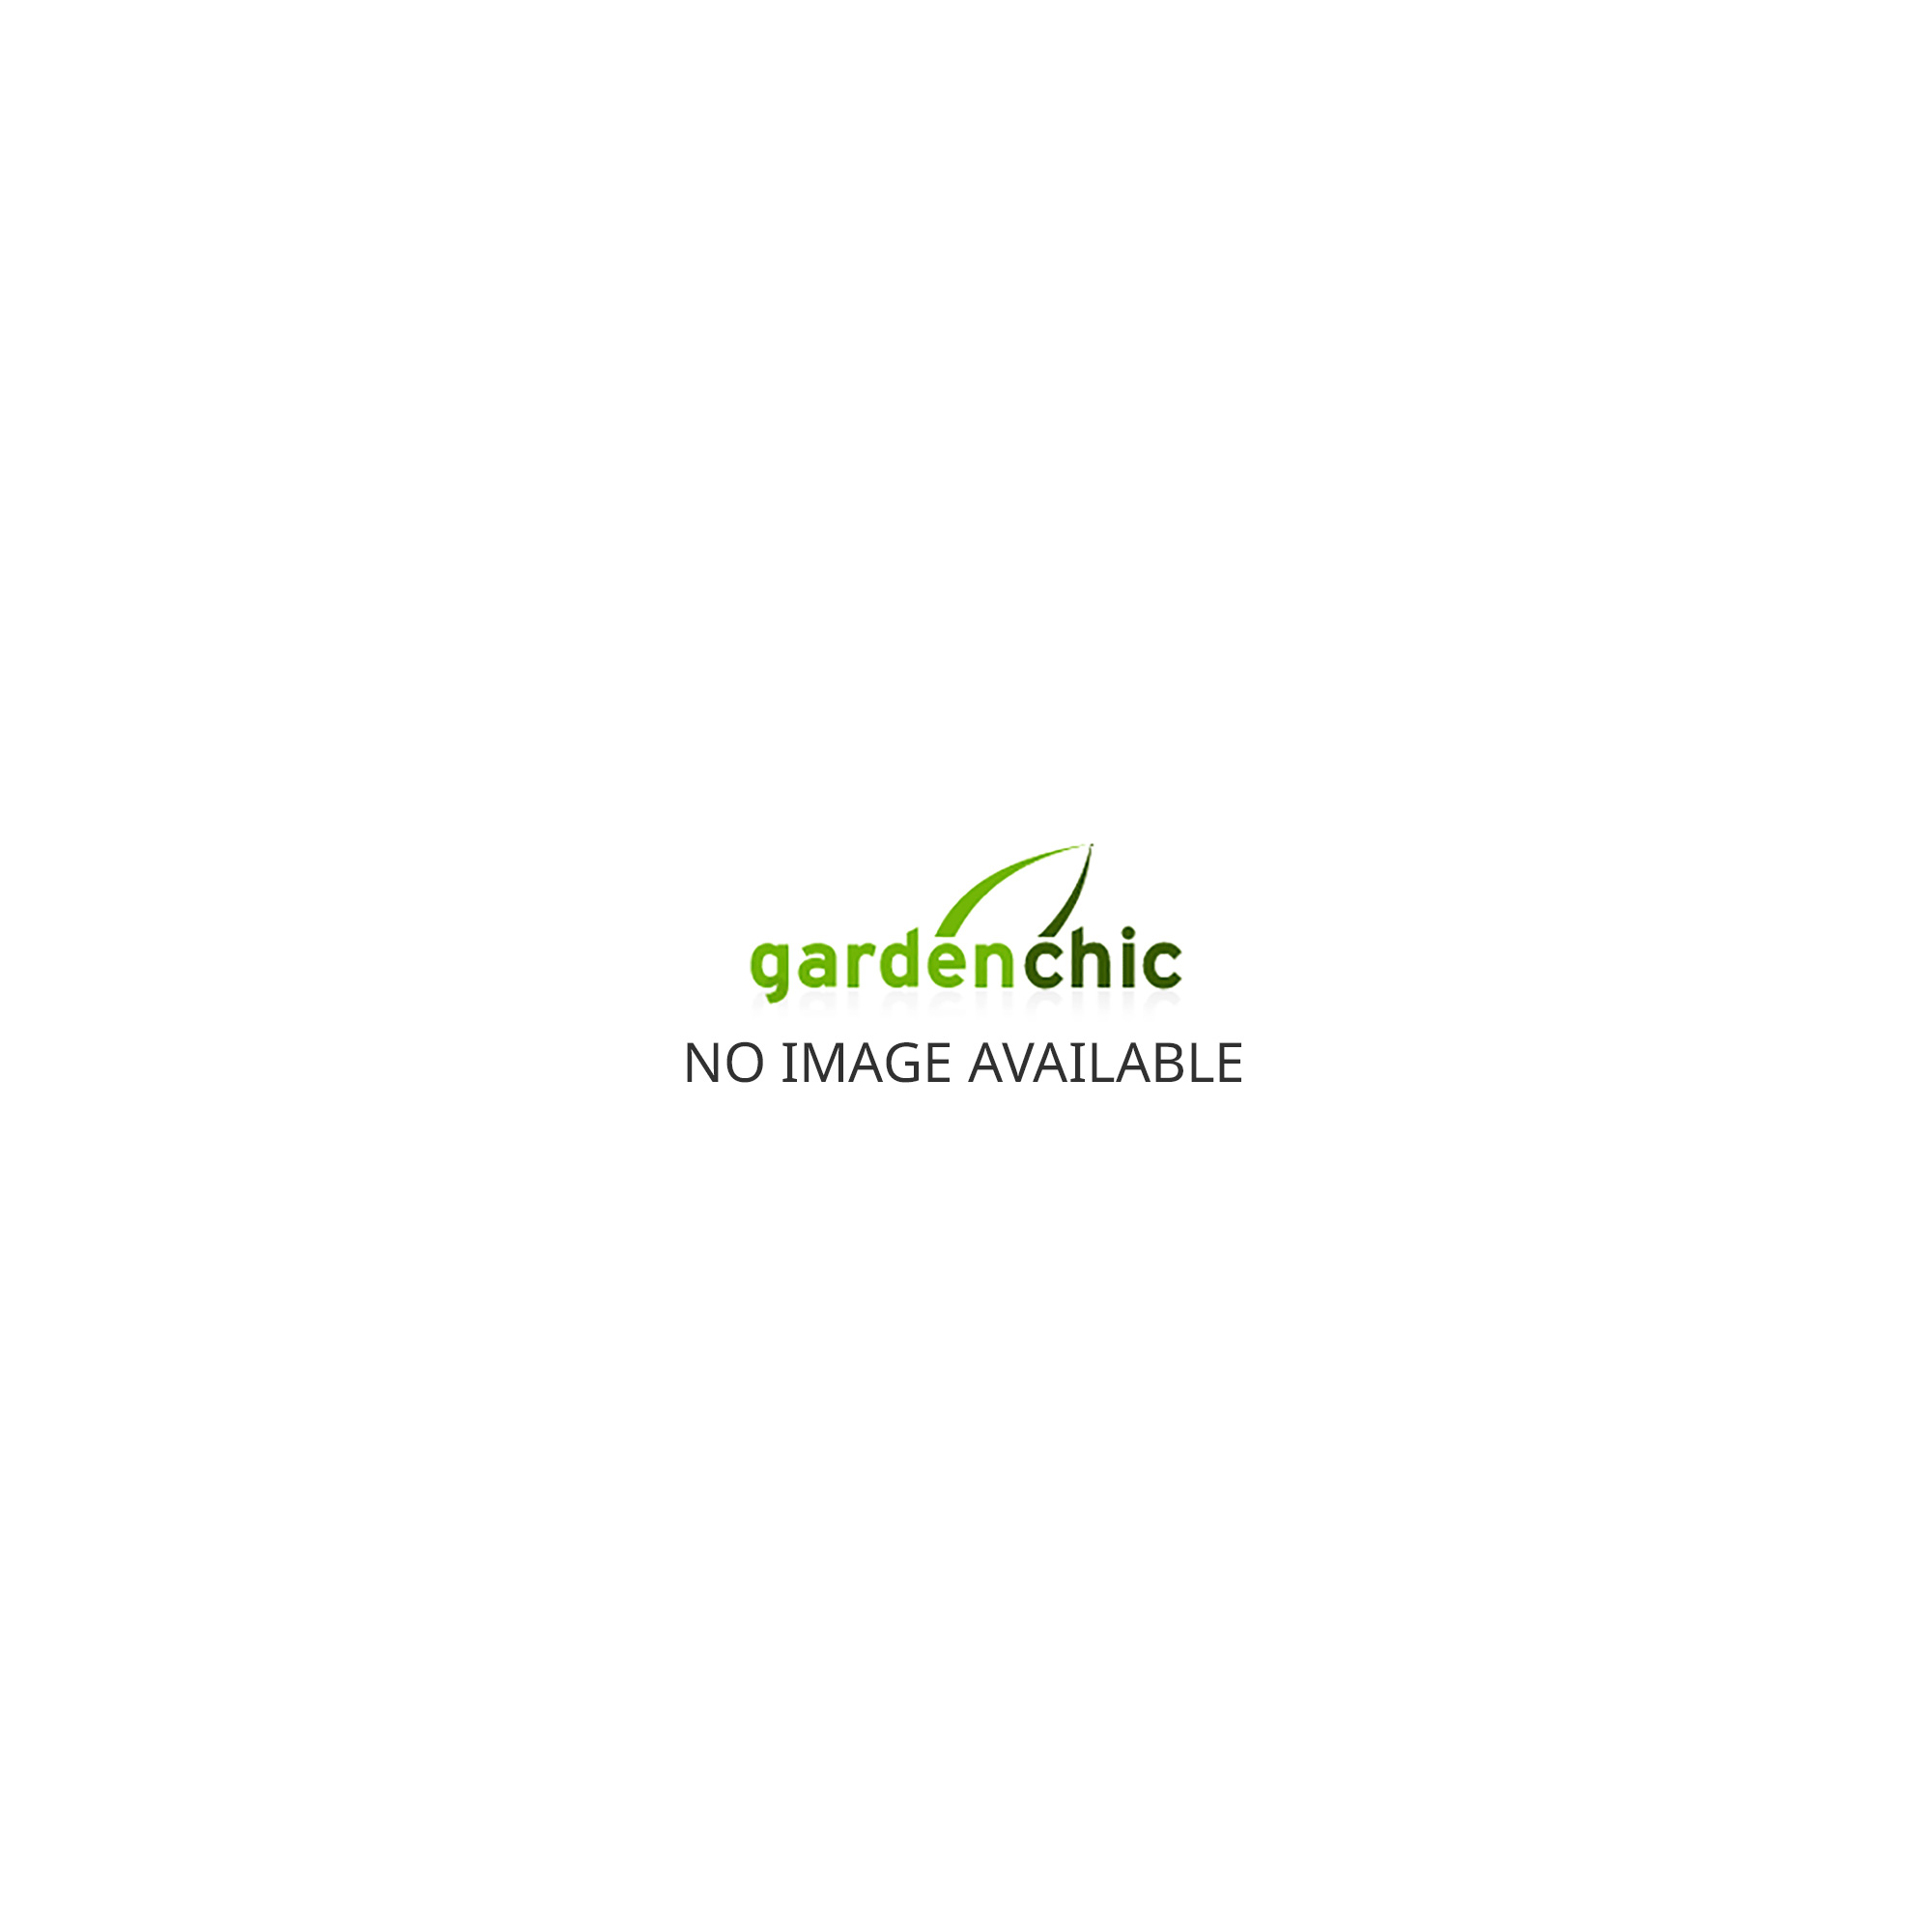 Forest garden burford pavilion octagonal 8 sided 5 benches for Progetto gazebo in legno pdf